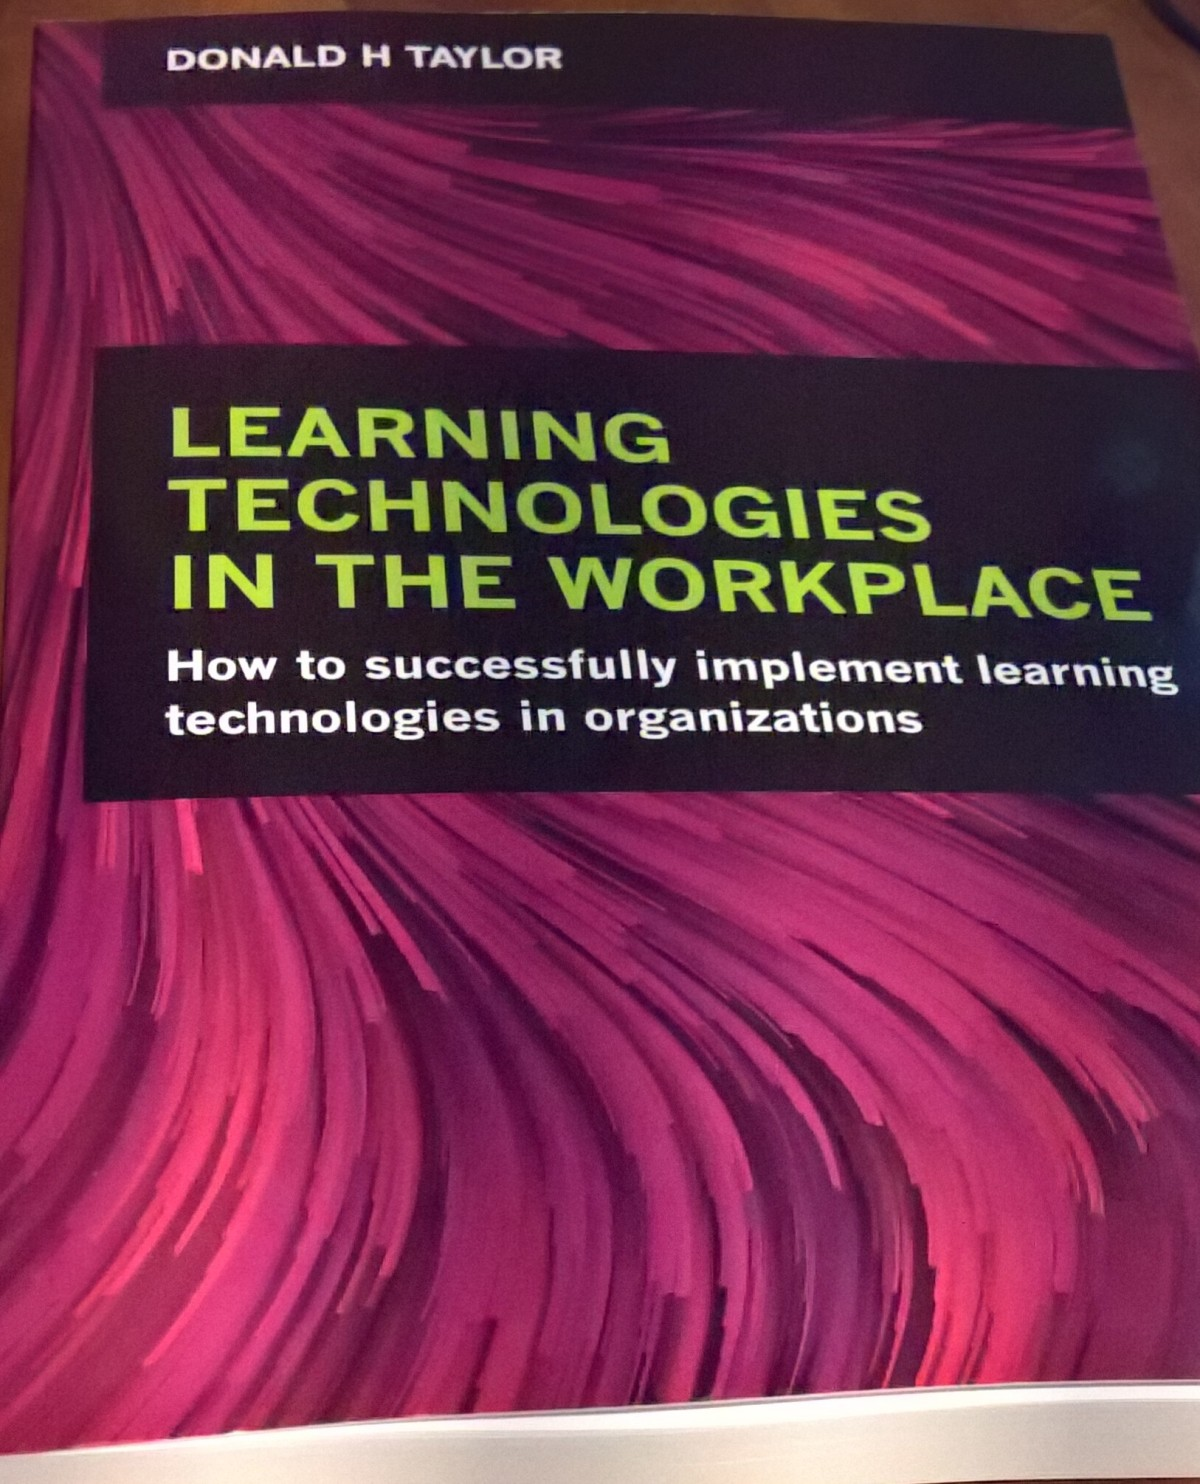 Learning Technologies book from Donald H Taylor